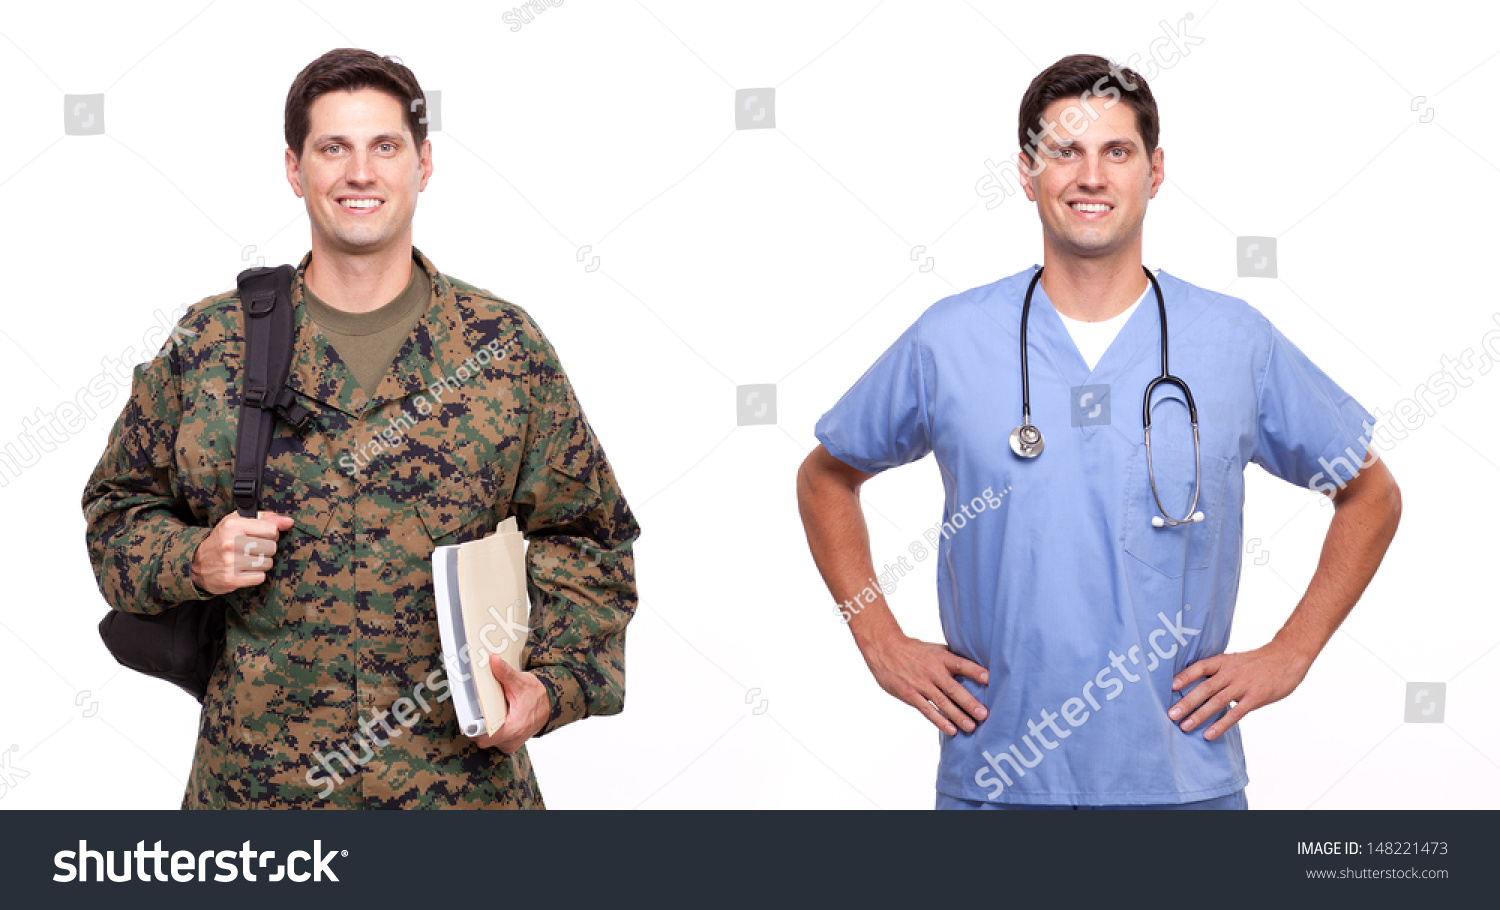 royalty veteran ier military transition  veteran ier military transition to civilian workplace money for college and education benefits male nurse and ier posing against white